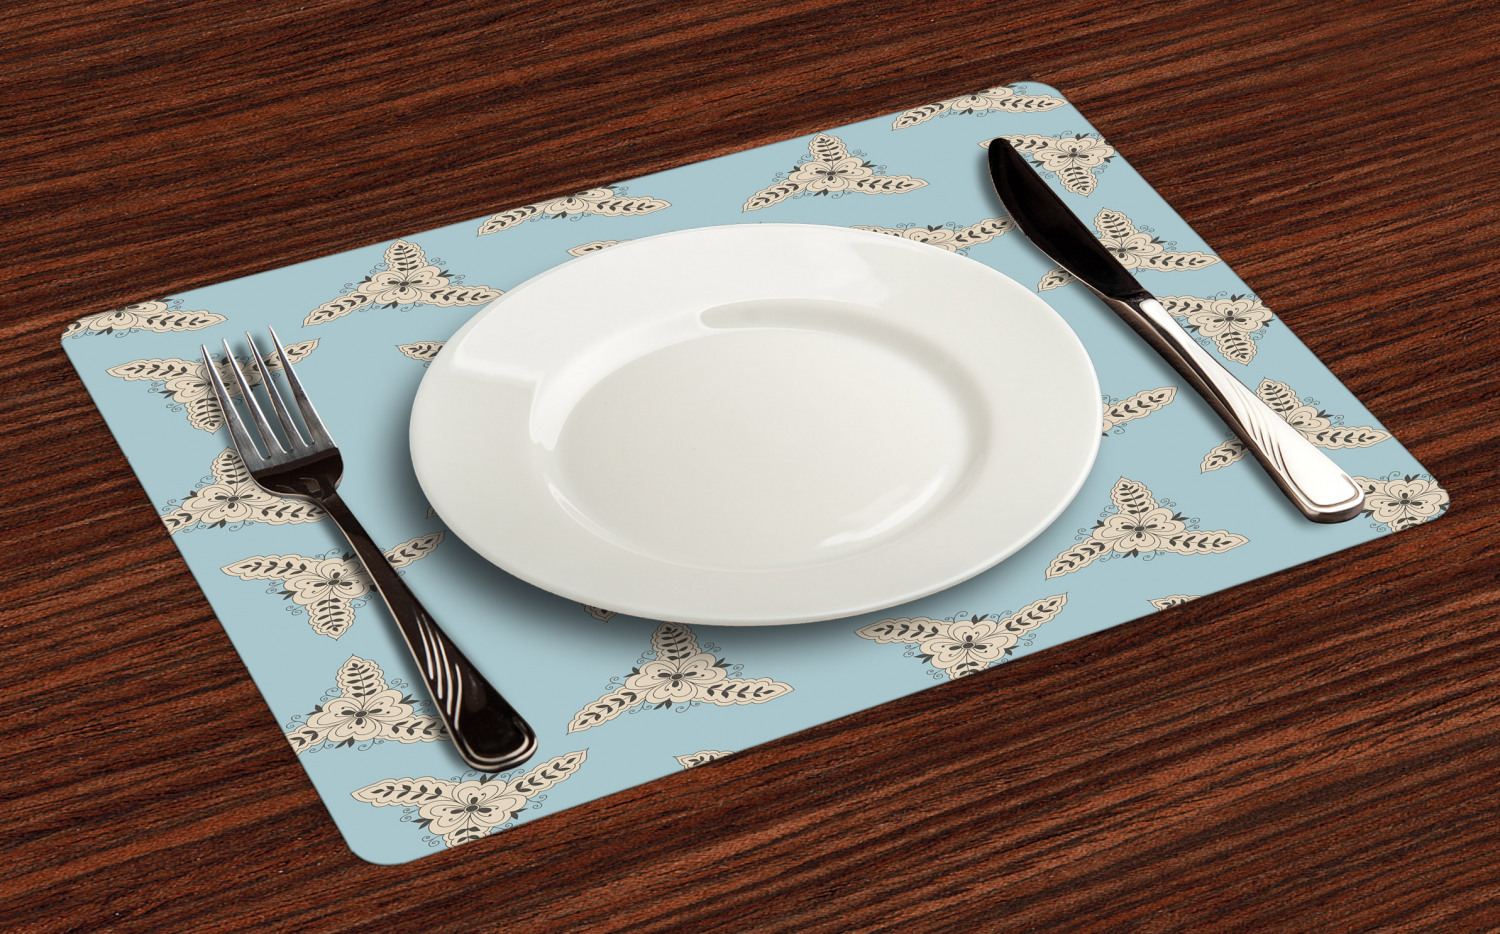 Ambesonne-Fabric-Place-Mats-Set-of-4-Placemats-for-Dining-Room-and-Kitchen-Table thumbnail 225